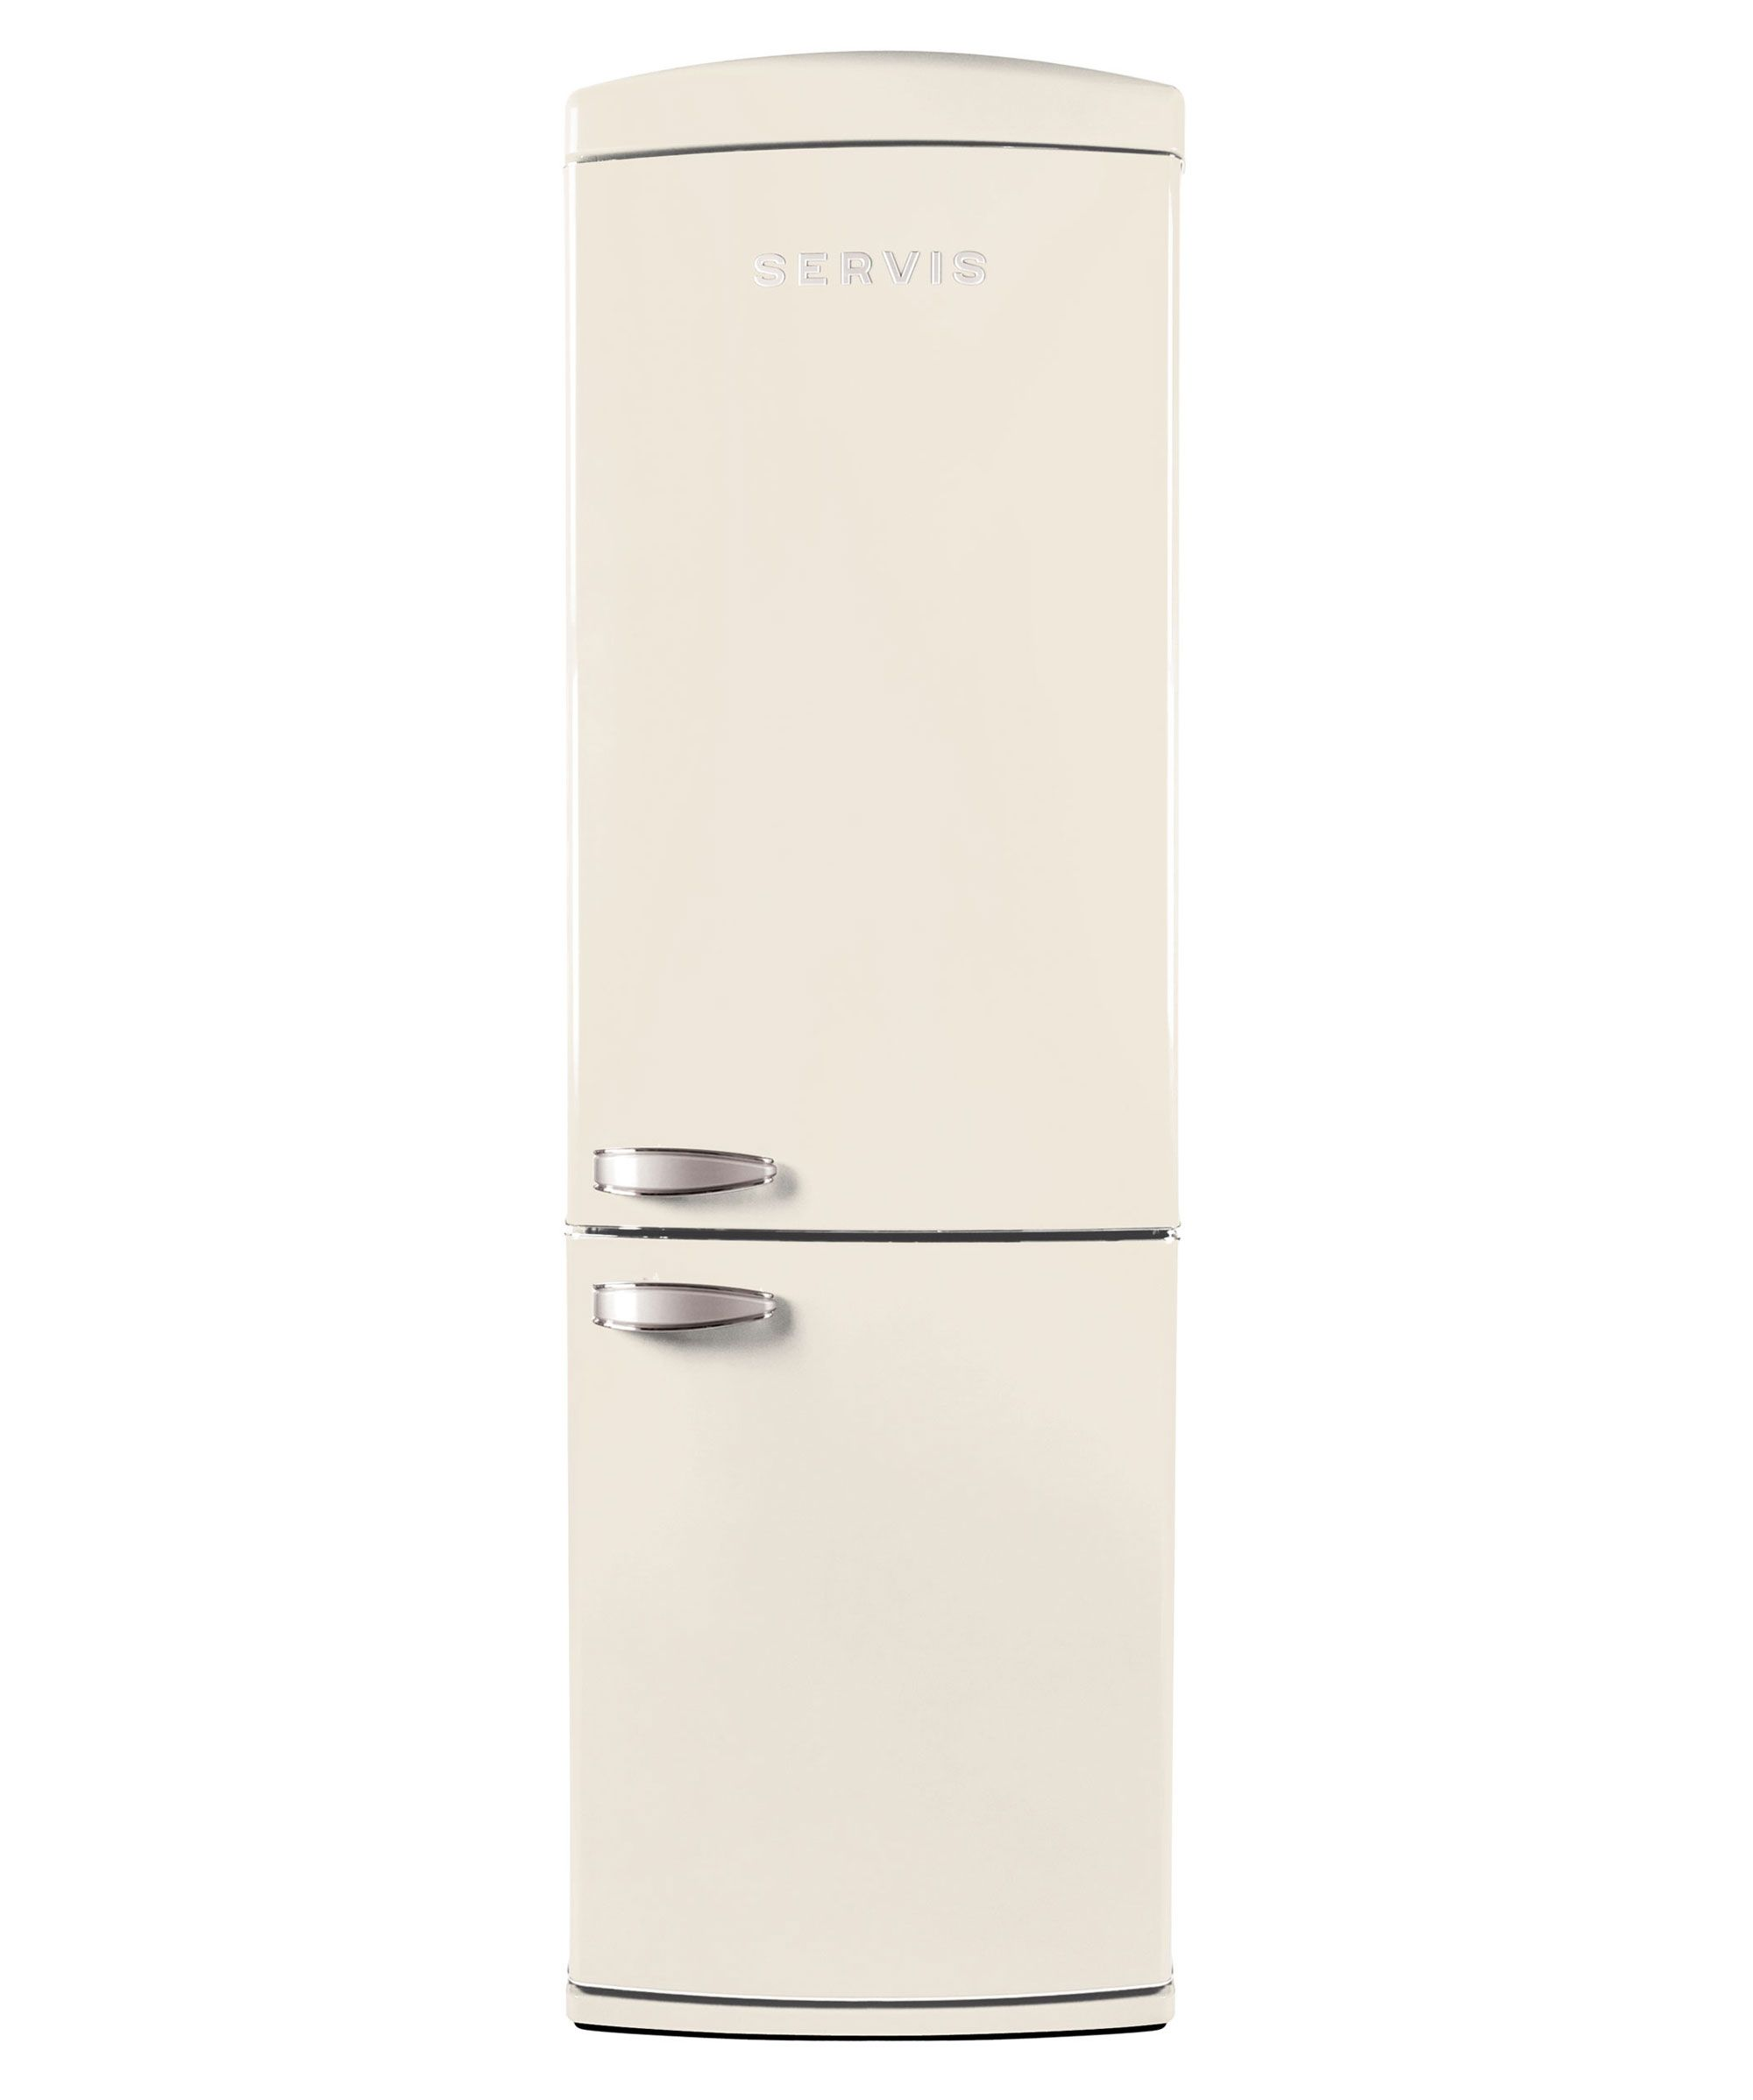 Servis C NFC Classic Cream Retro Fridge Freezer